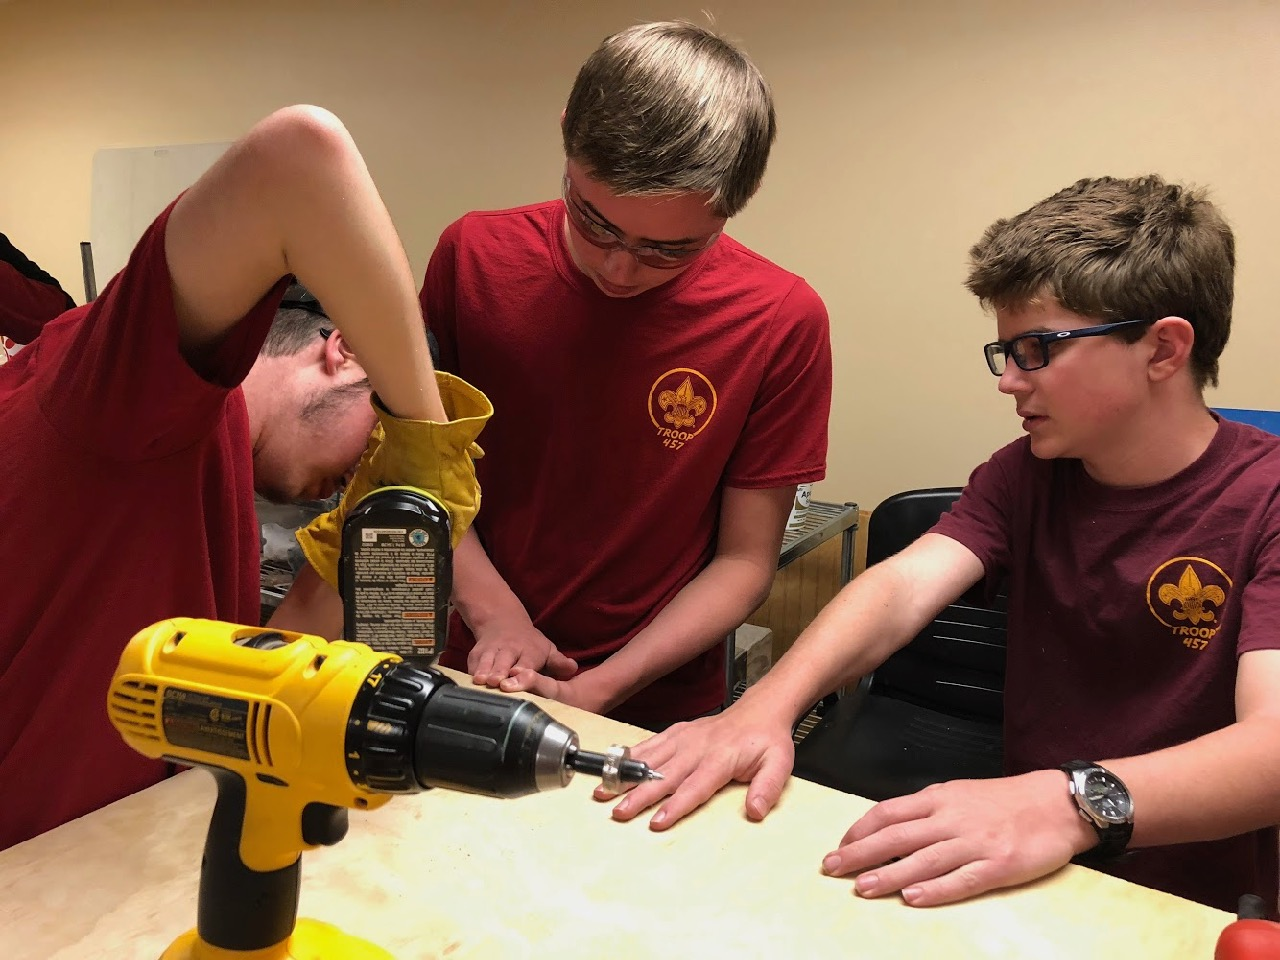 Jonathan uses a drill to secure the bench top while Stephen and Lucas hold everything in place